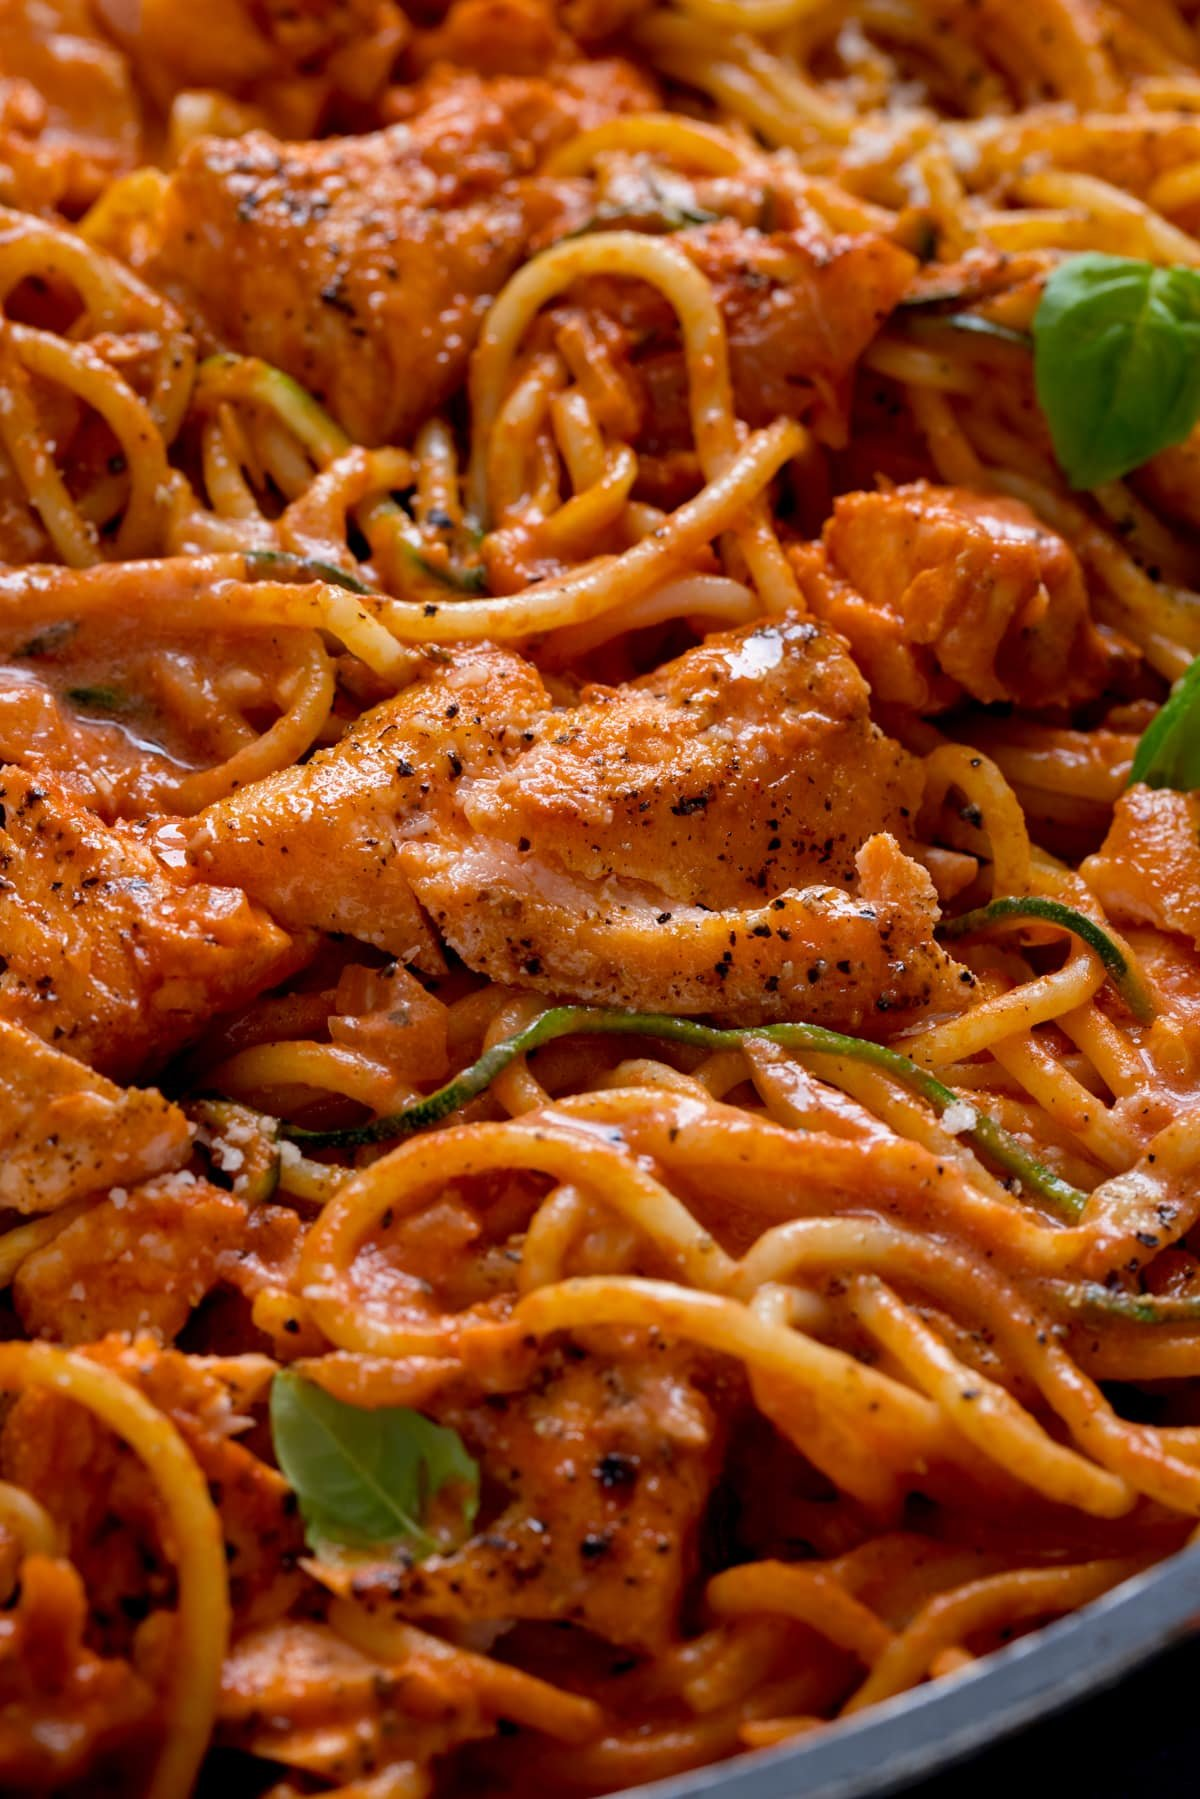 Close up of pieces of seasoned salmon in spaghetti in a creamy tomato sauce.